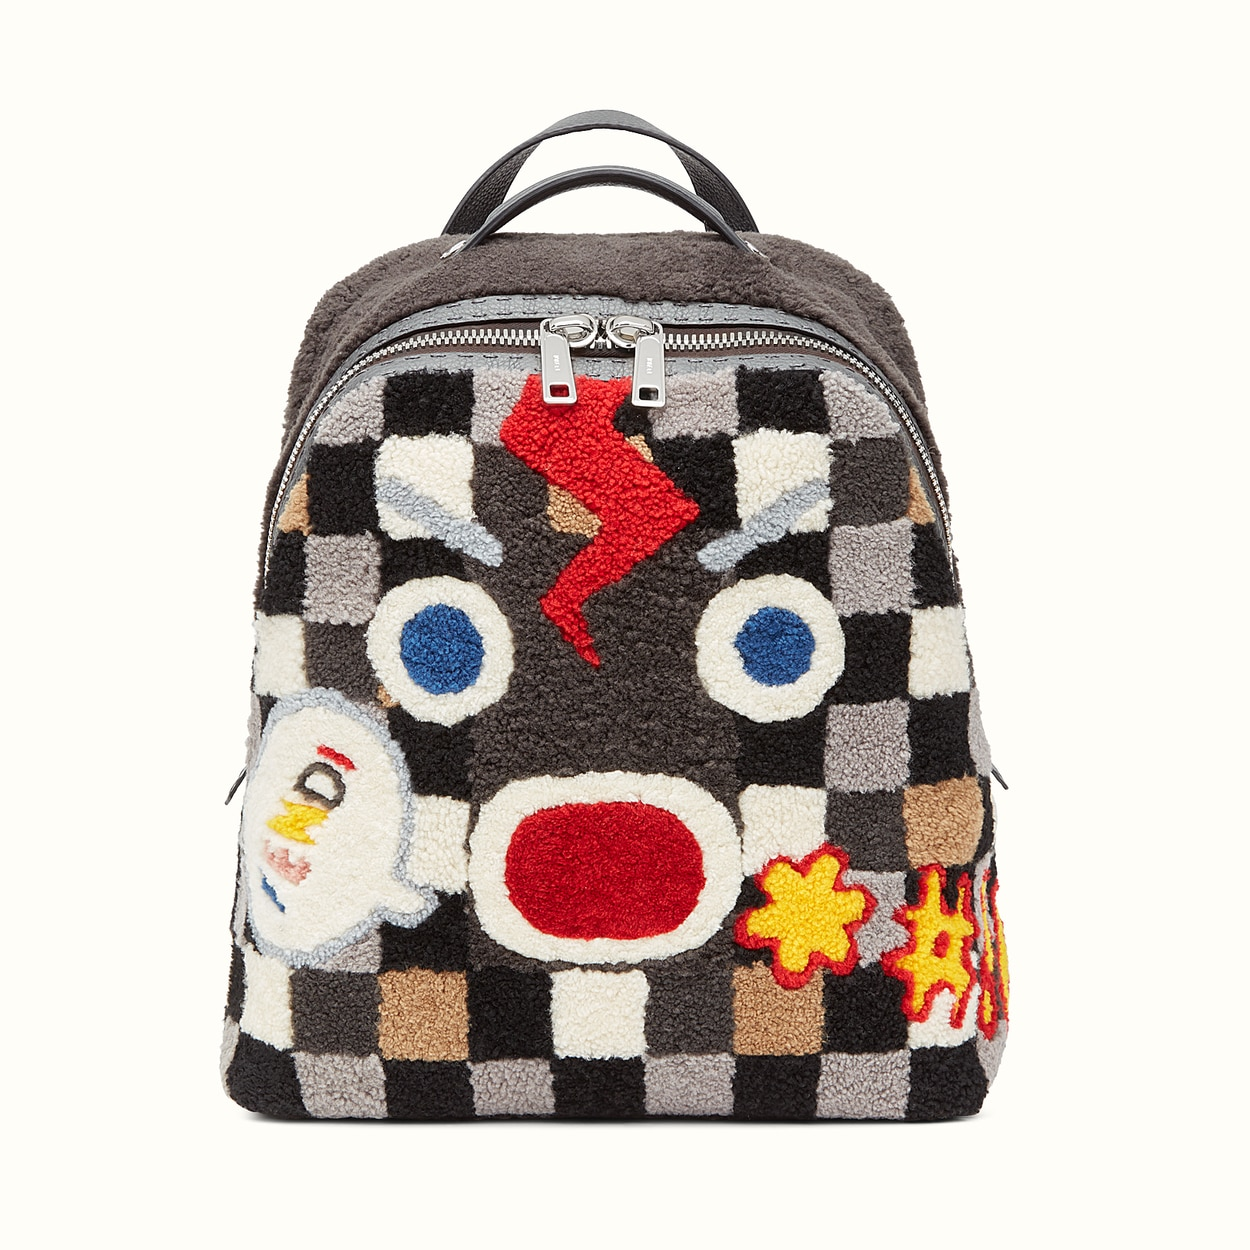 ccdad9241c64 Fendi Multicolor Checkered Sheepskin Mad Furious Fendi Faces Backpack Bag